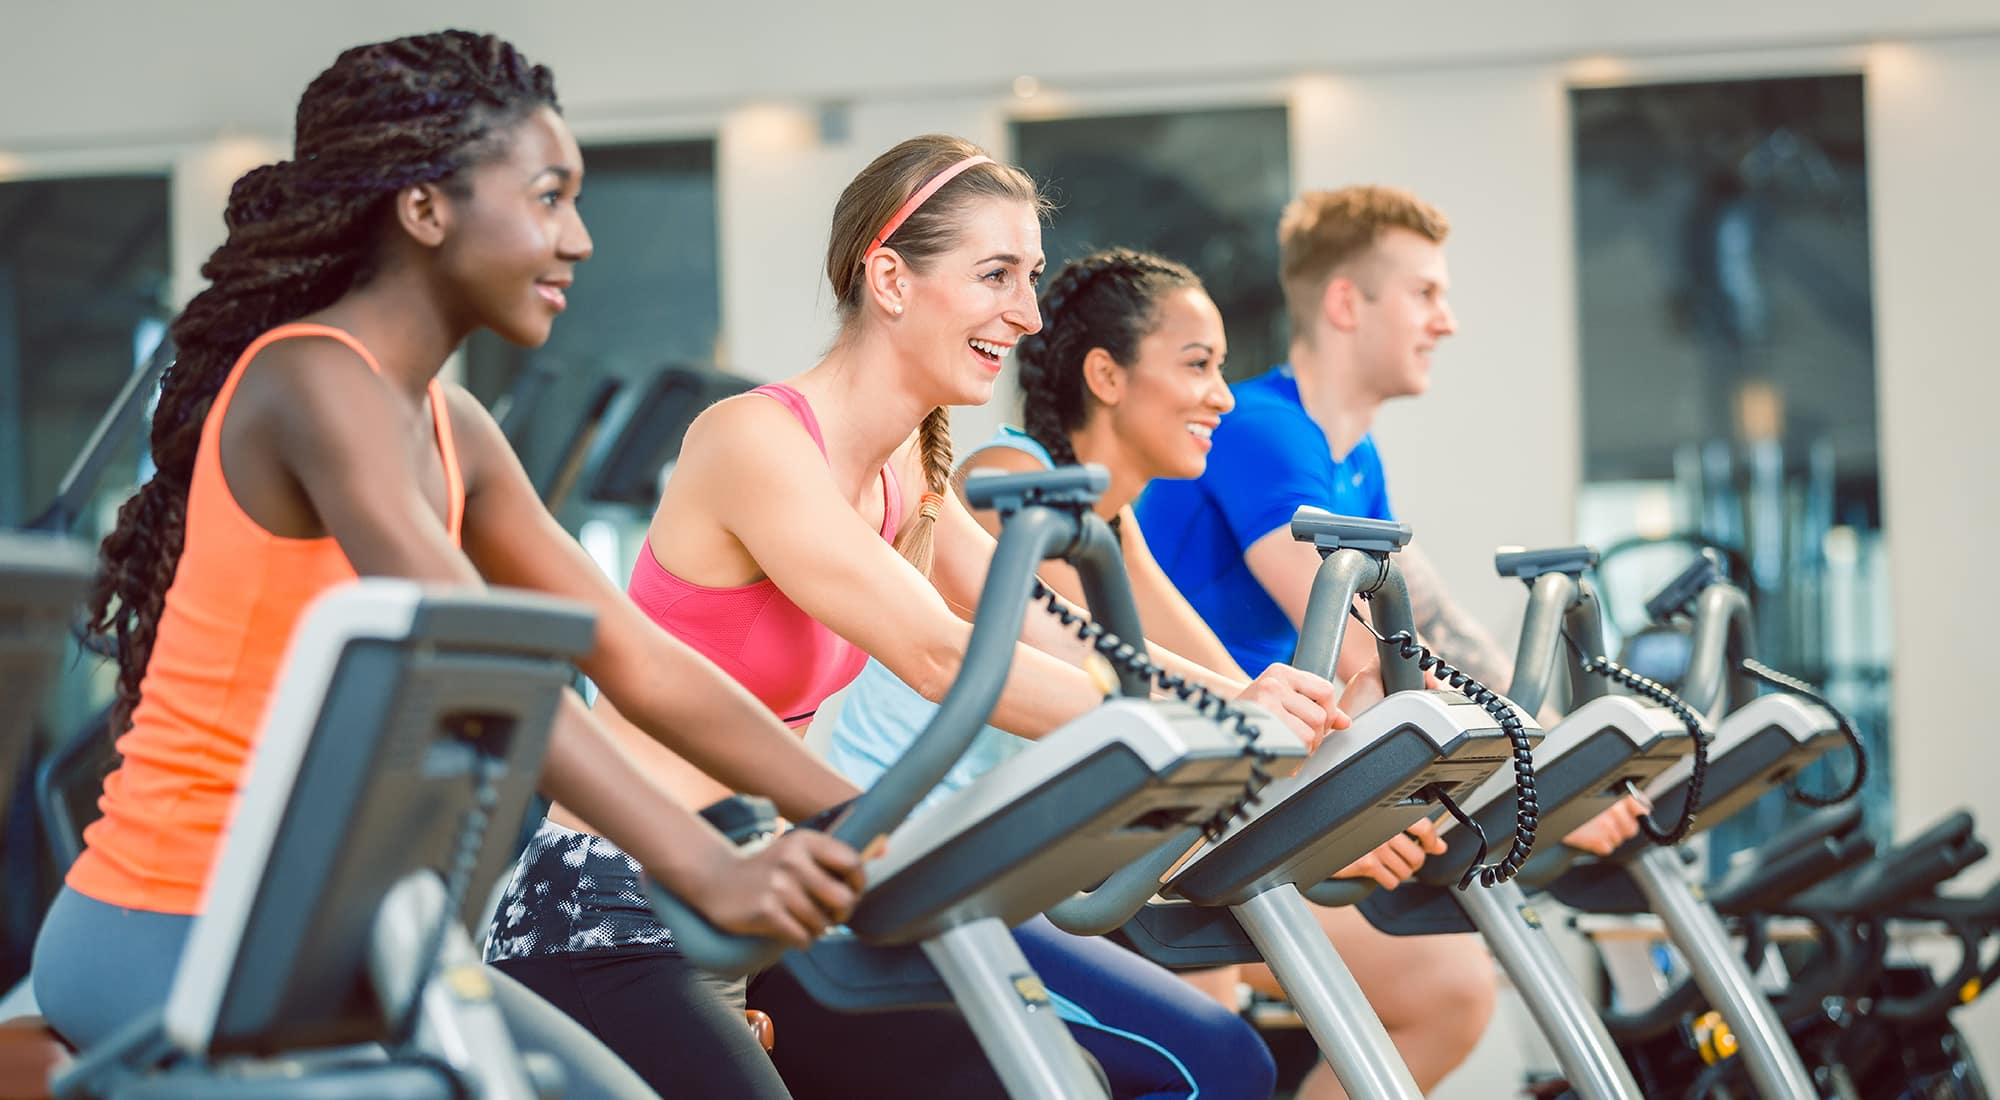 Coronavirus: Physical activity sector calls for special measures from Government to keep leisure facilities afloat